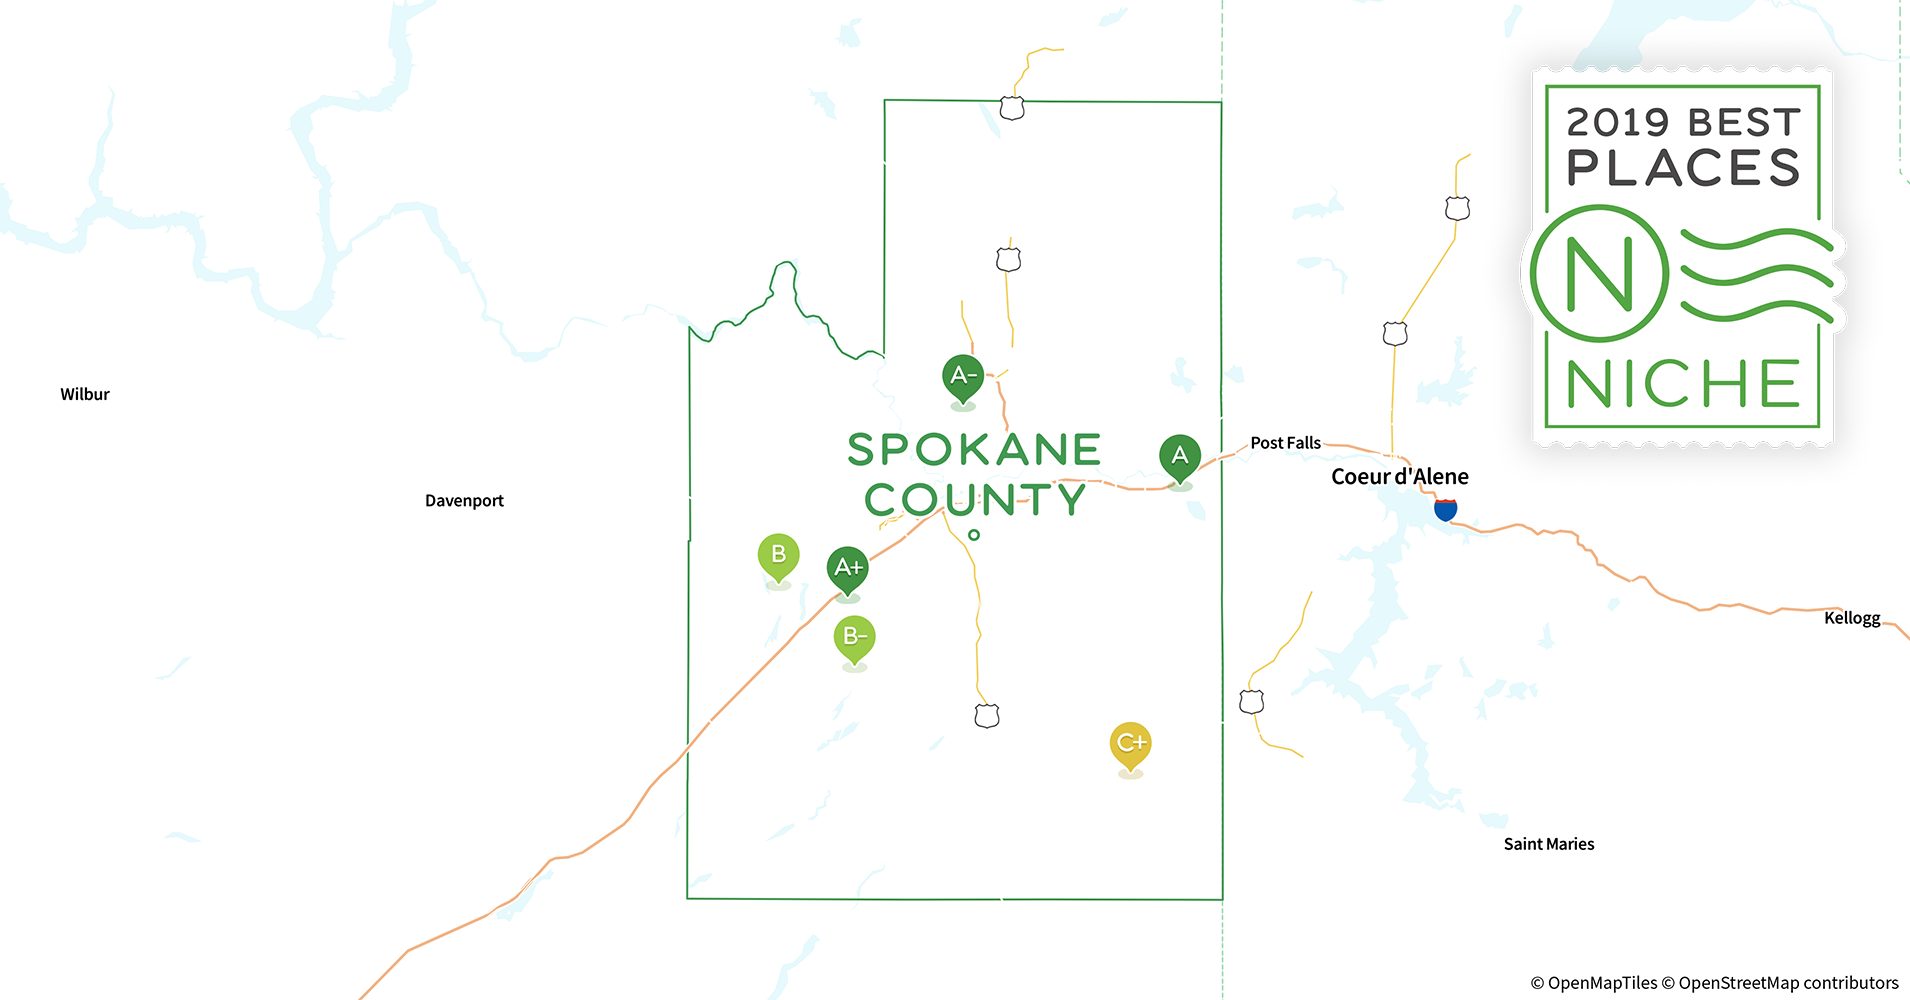 2019 Best Places To Live In Spokane County Wa Niche